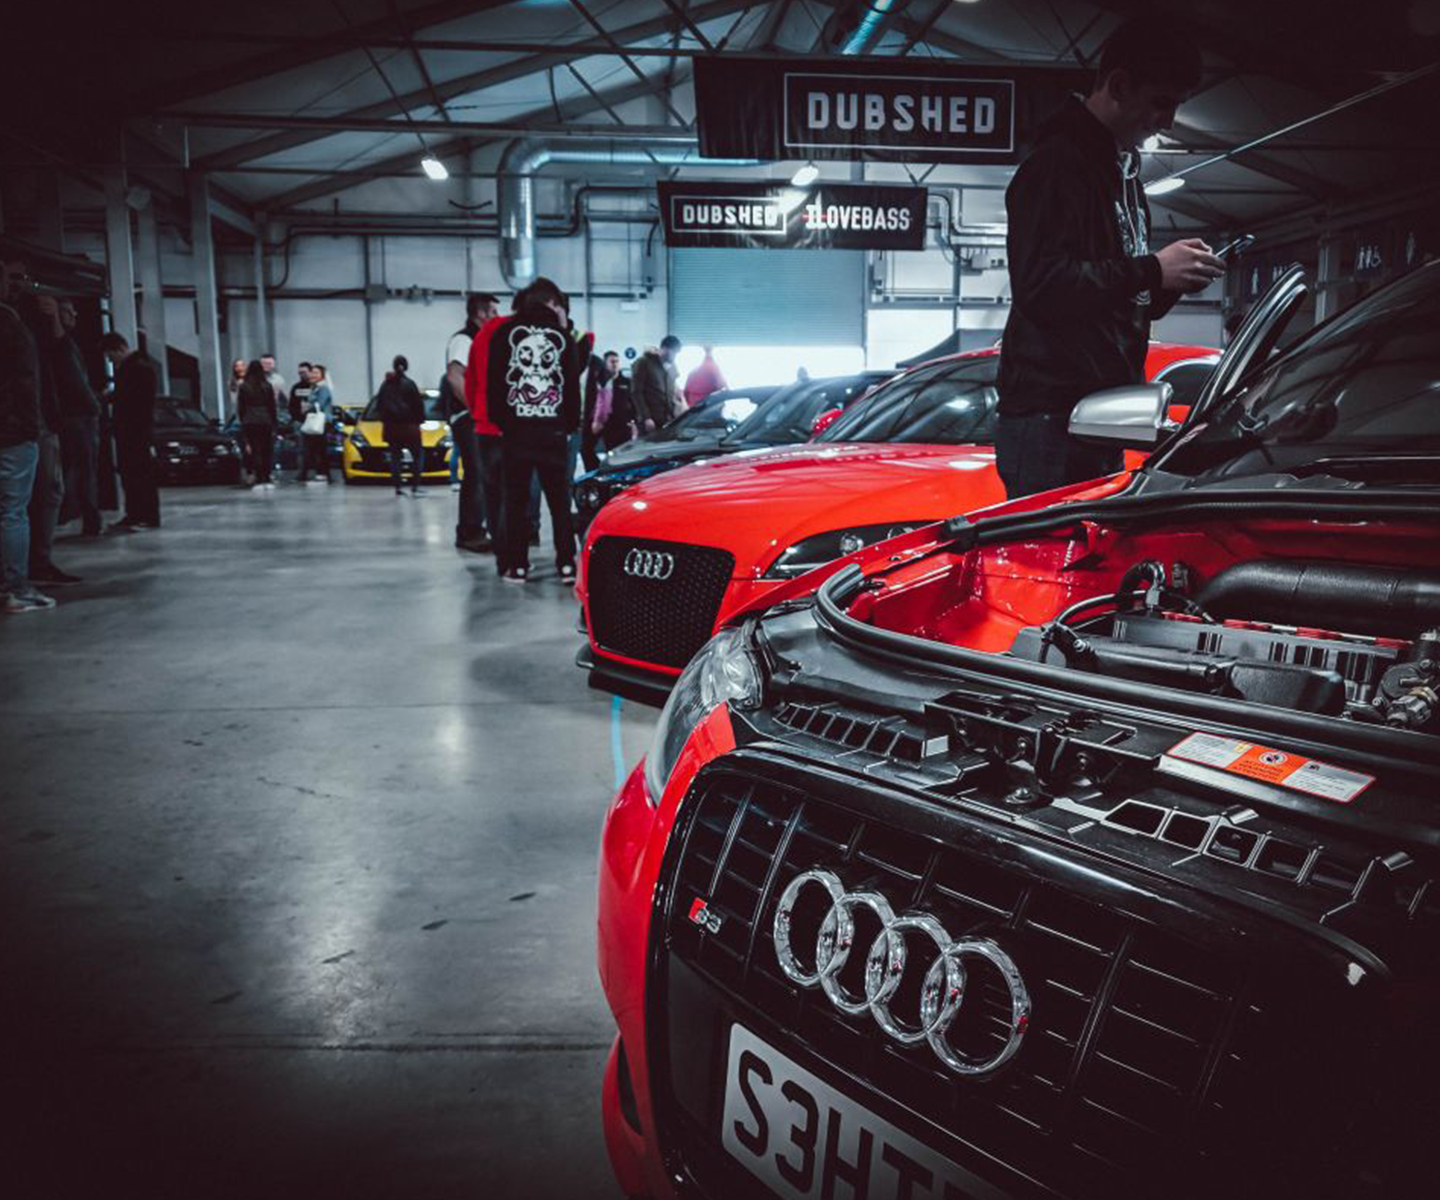 DUBSHED 2019